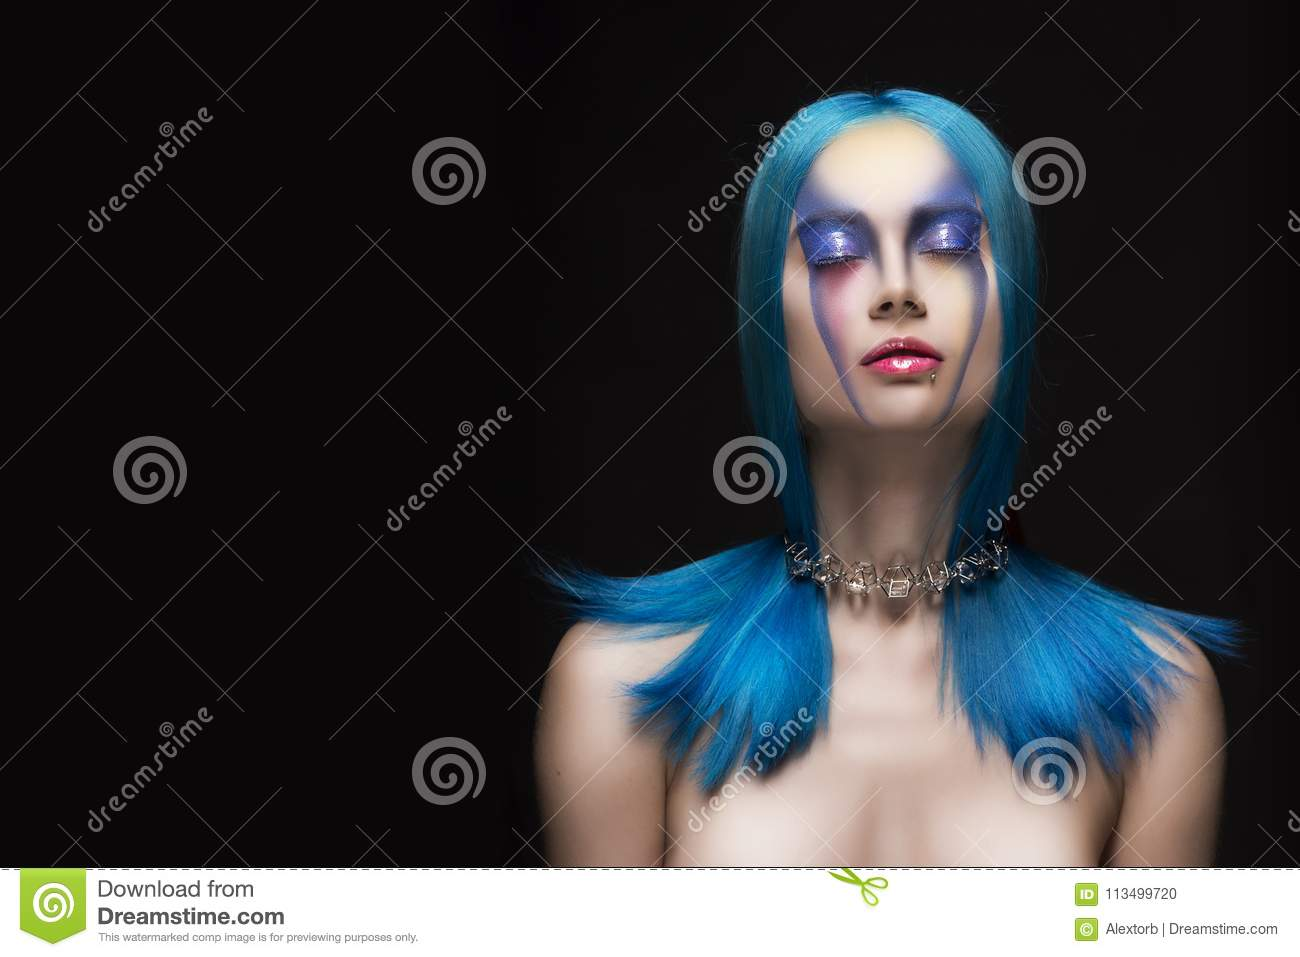 Sensual portrait of beautiful dyed blue hair naked shoulders closed eyes girl wearing necklace. Vanguard fashion make-up.